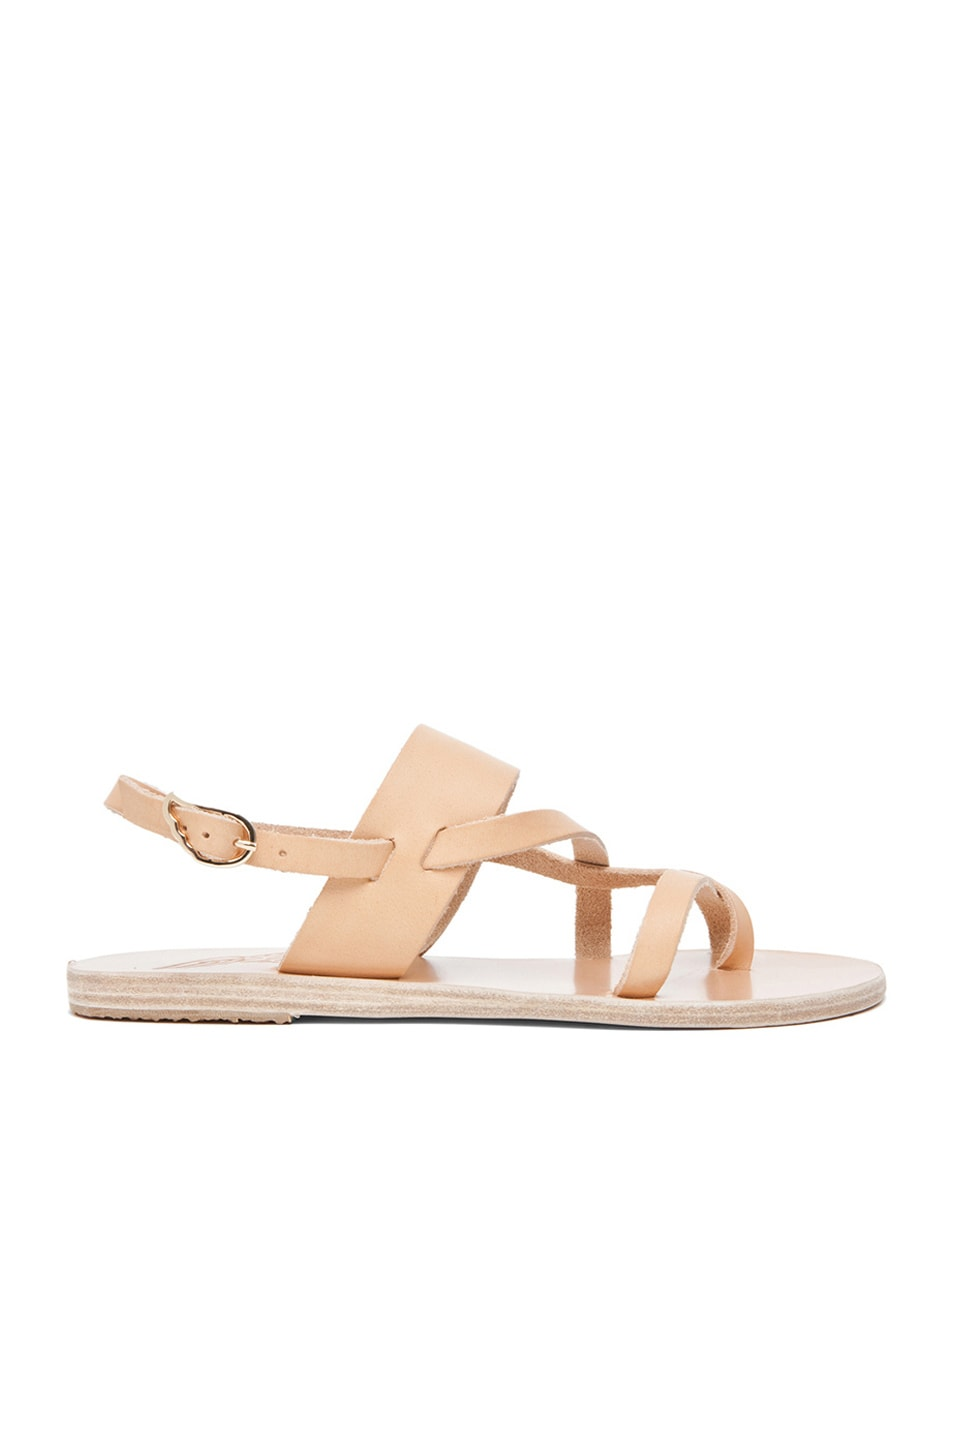 Image 1 of Ancient Greek Sandals Alethea Calfskin Leather Sandals in Natural